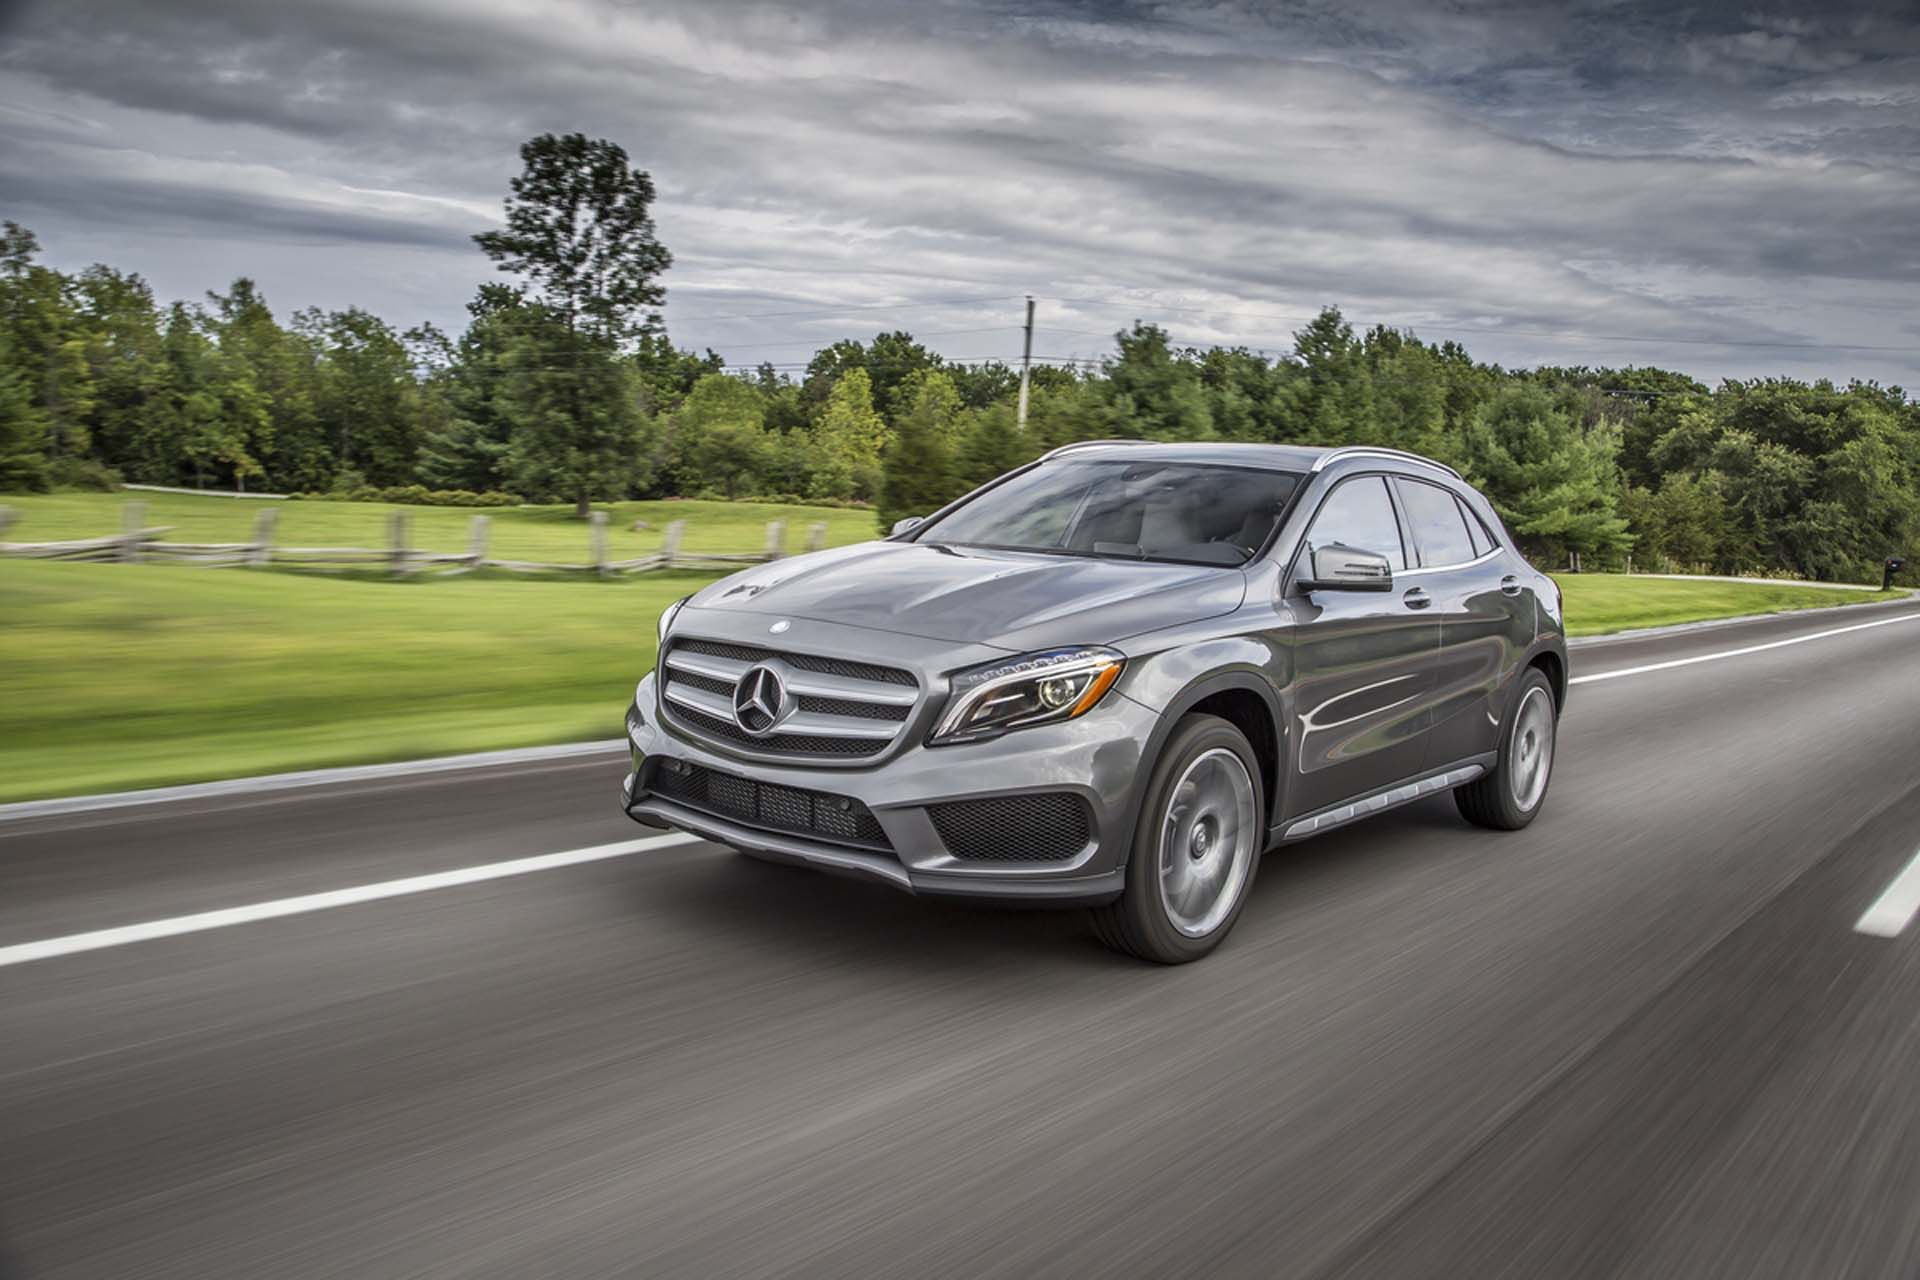 2017 mercedes benz gla class review ratings specs for Mercedes benz gla class price